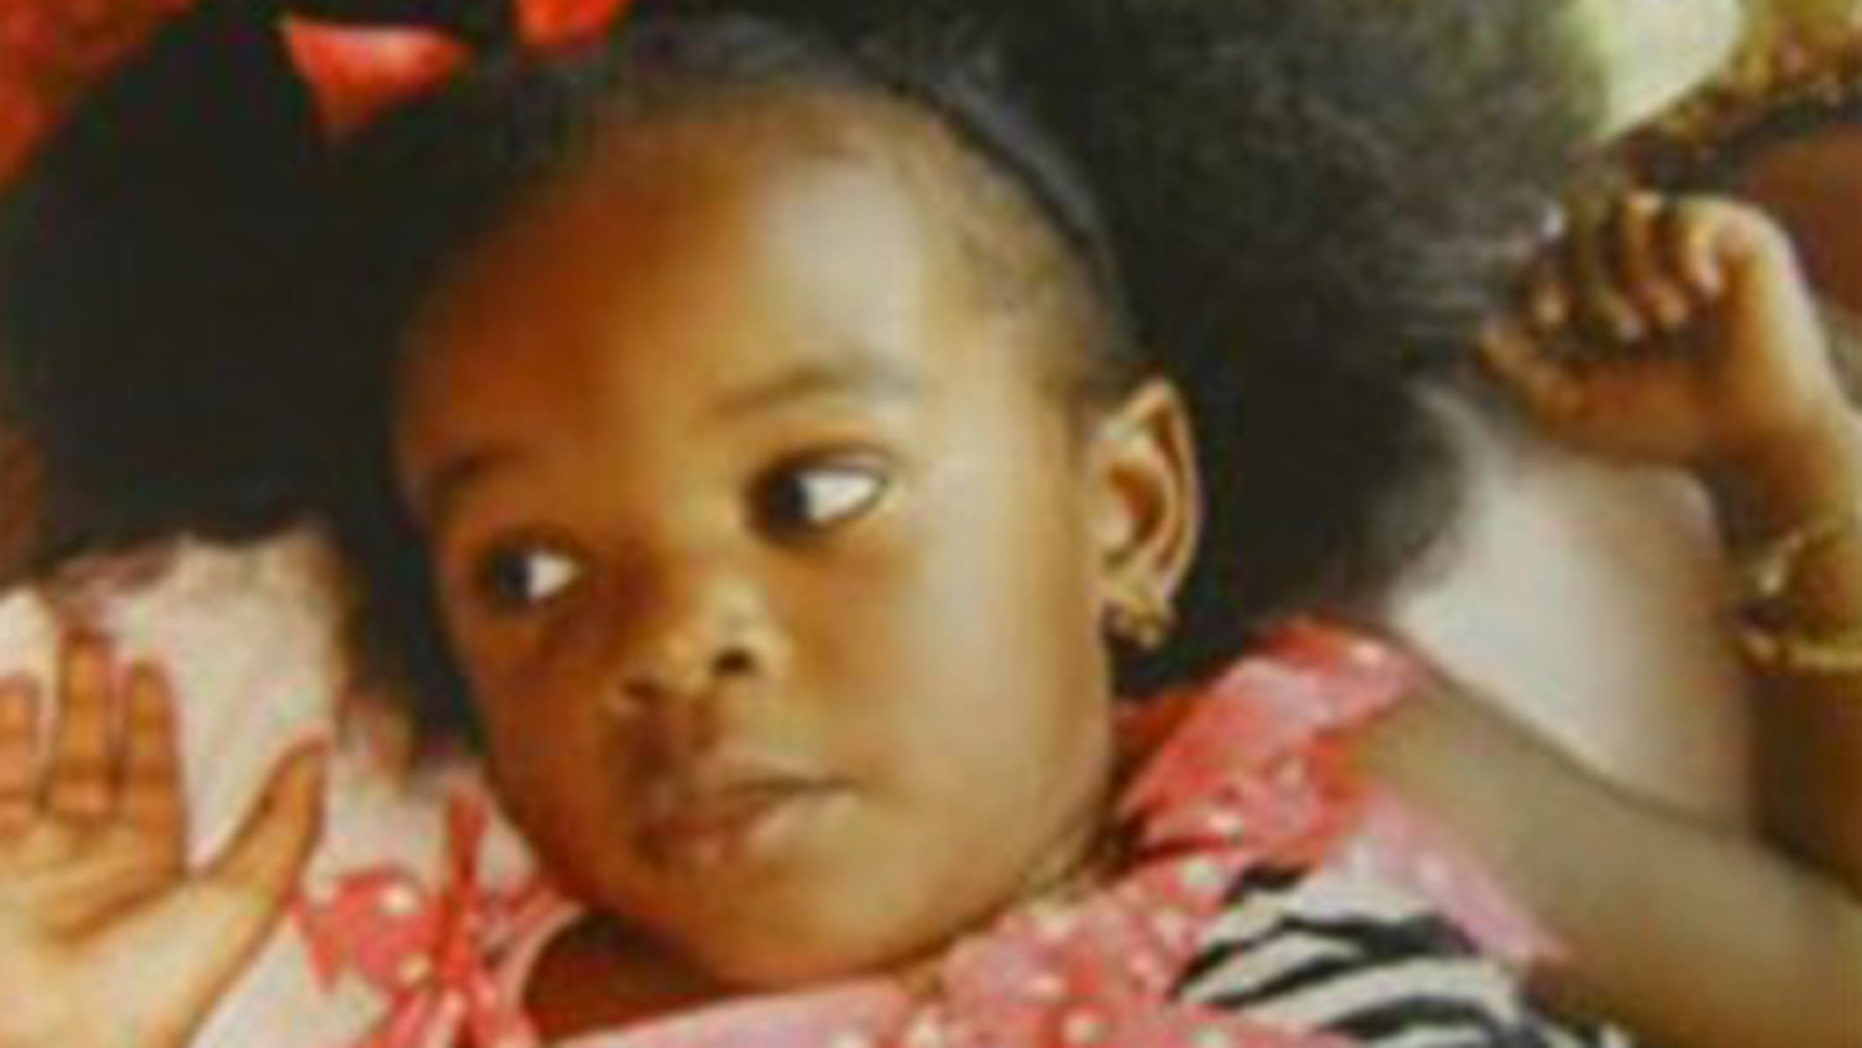 November 23, 2011: This photo provided by the Ocean County Prosecutor's Office shows Tierra Morgan of Lakehurst NJ, who was found dead in her car seat, partially submerged in a stream in Monmouth County's  Shark River Park.